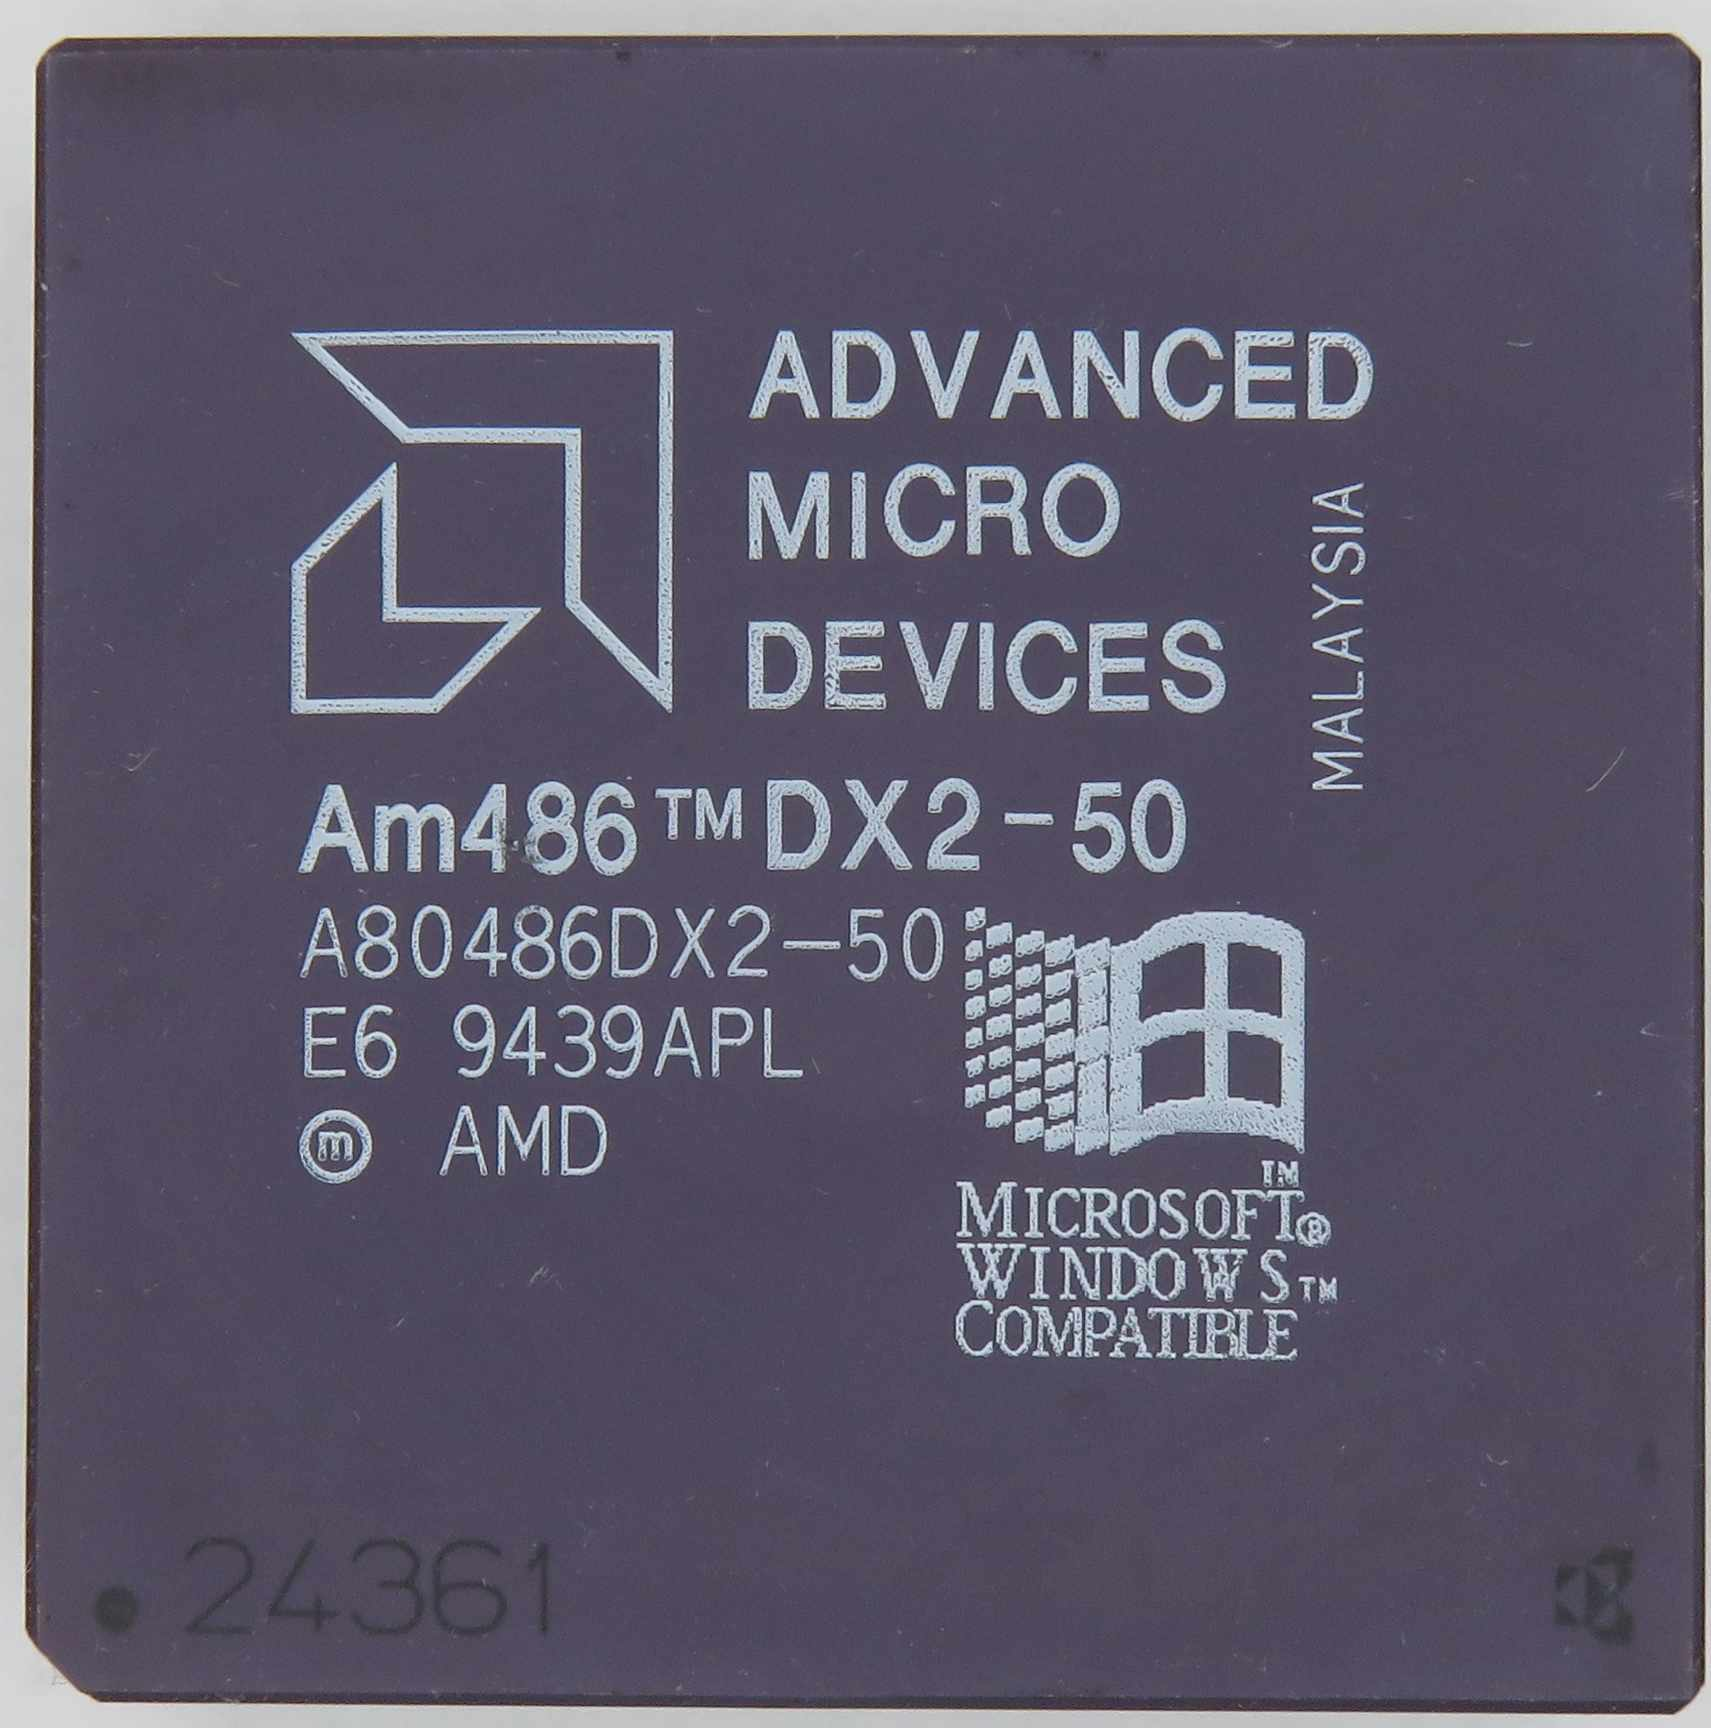 AMD 486 DX2-50 WIN.jpg